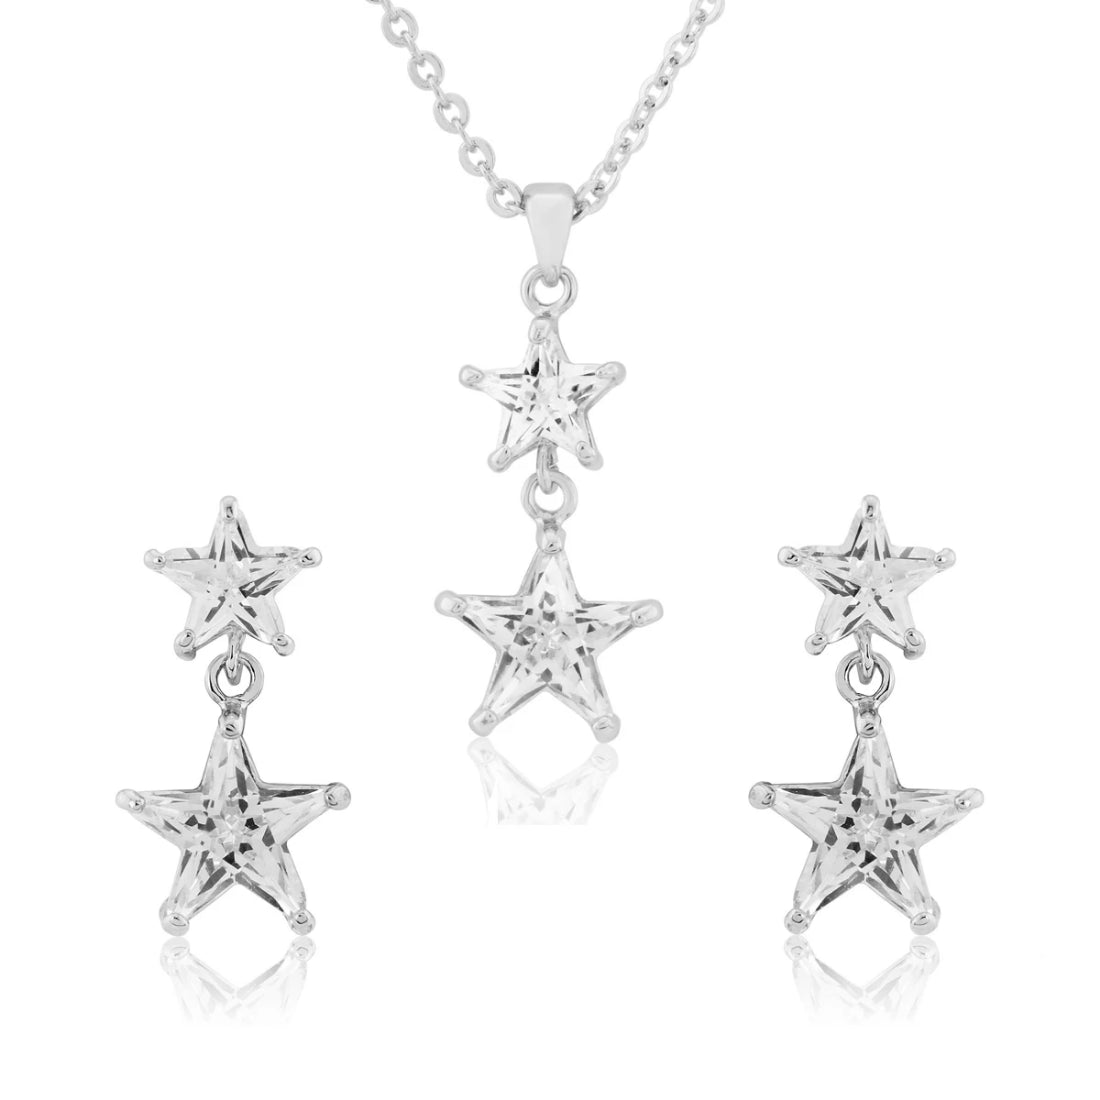 Starlight Crystal Jewellery Set